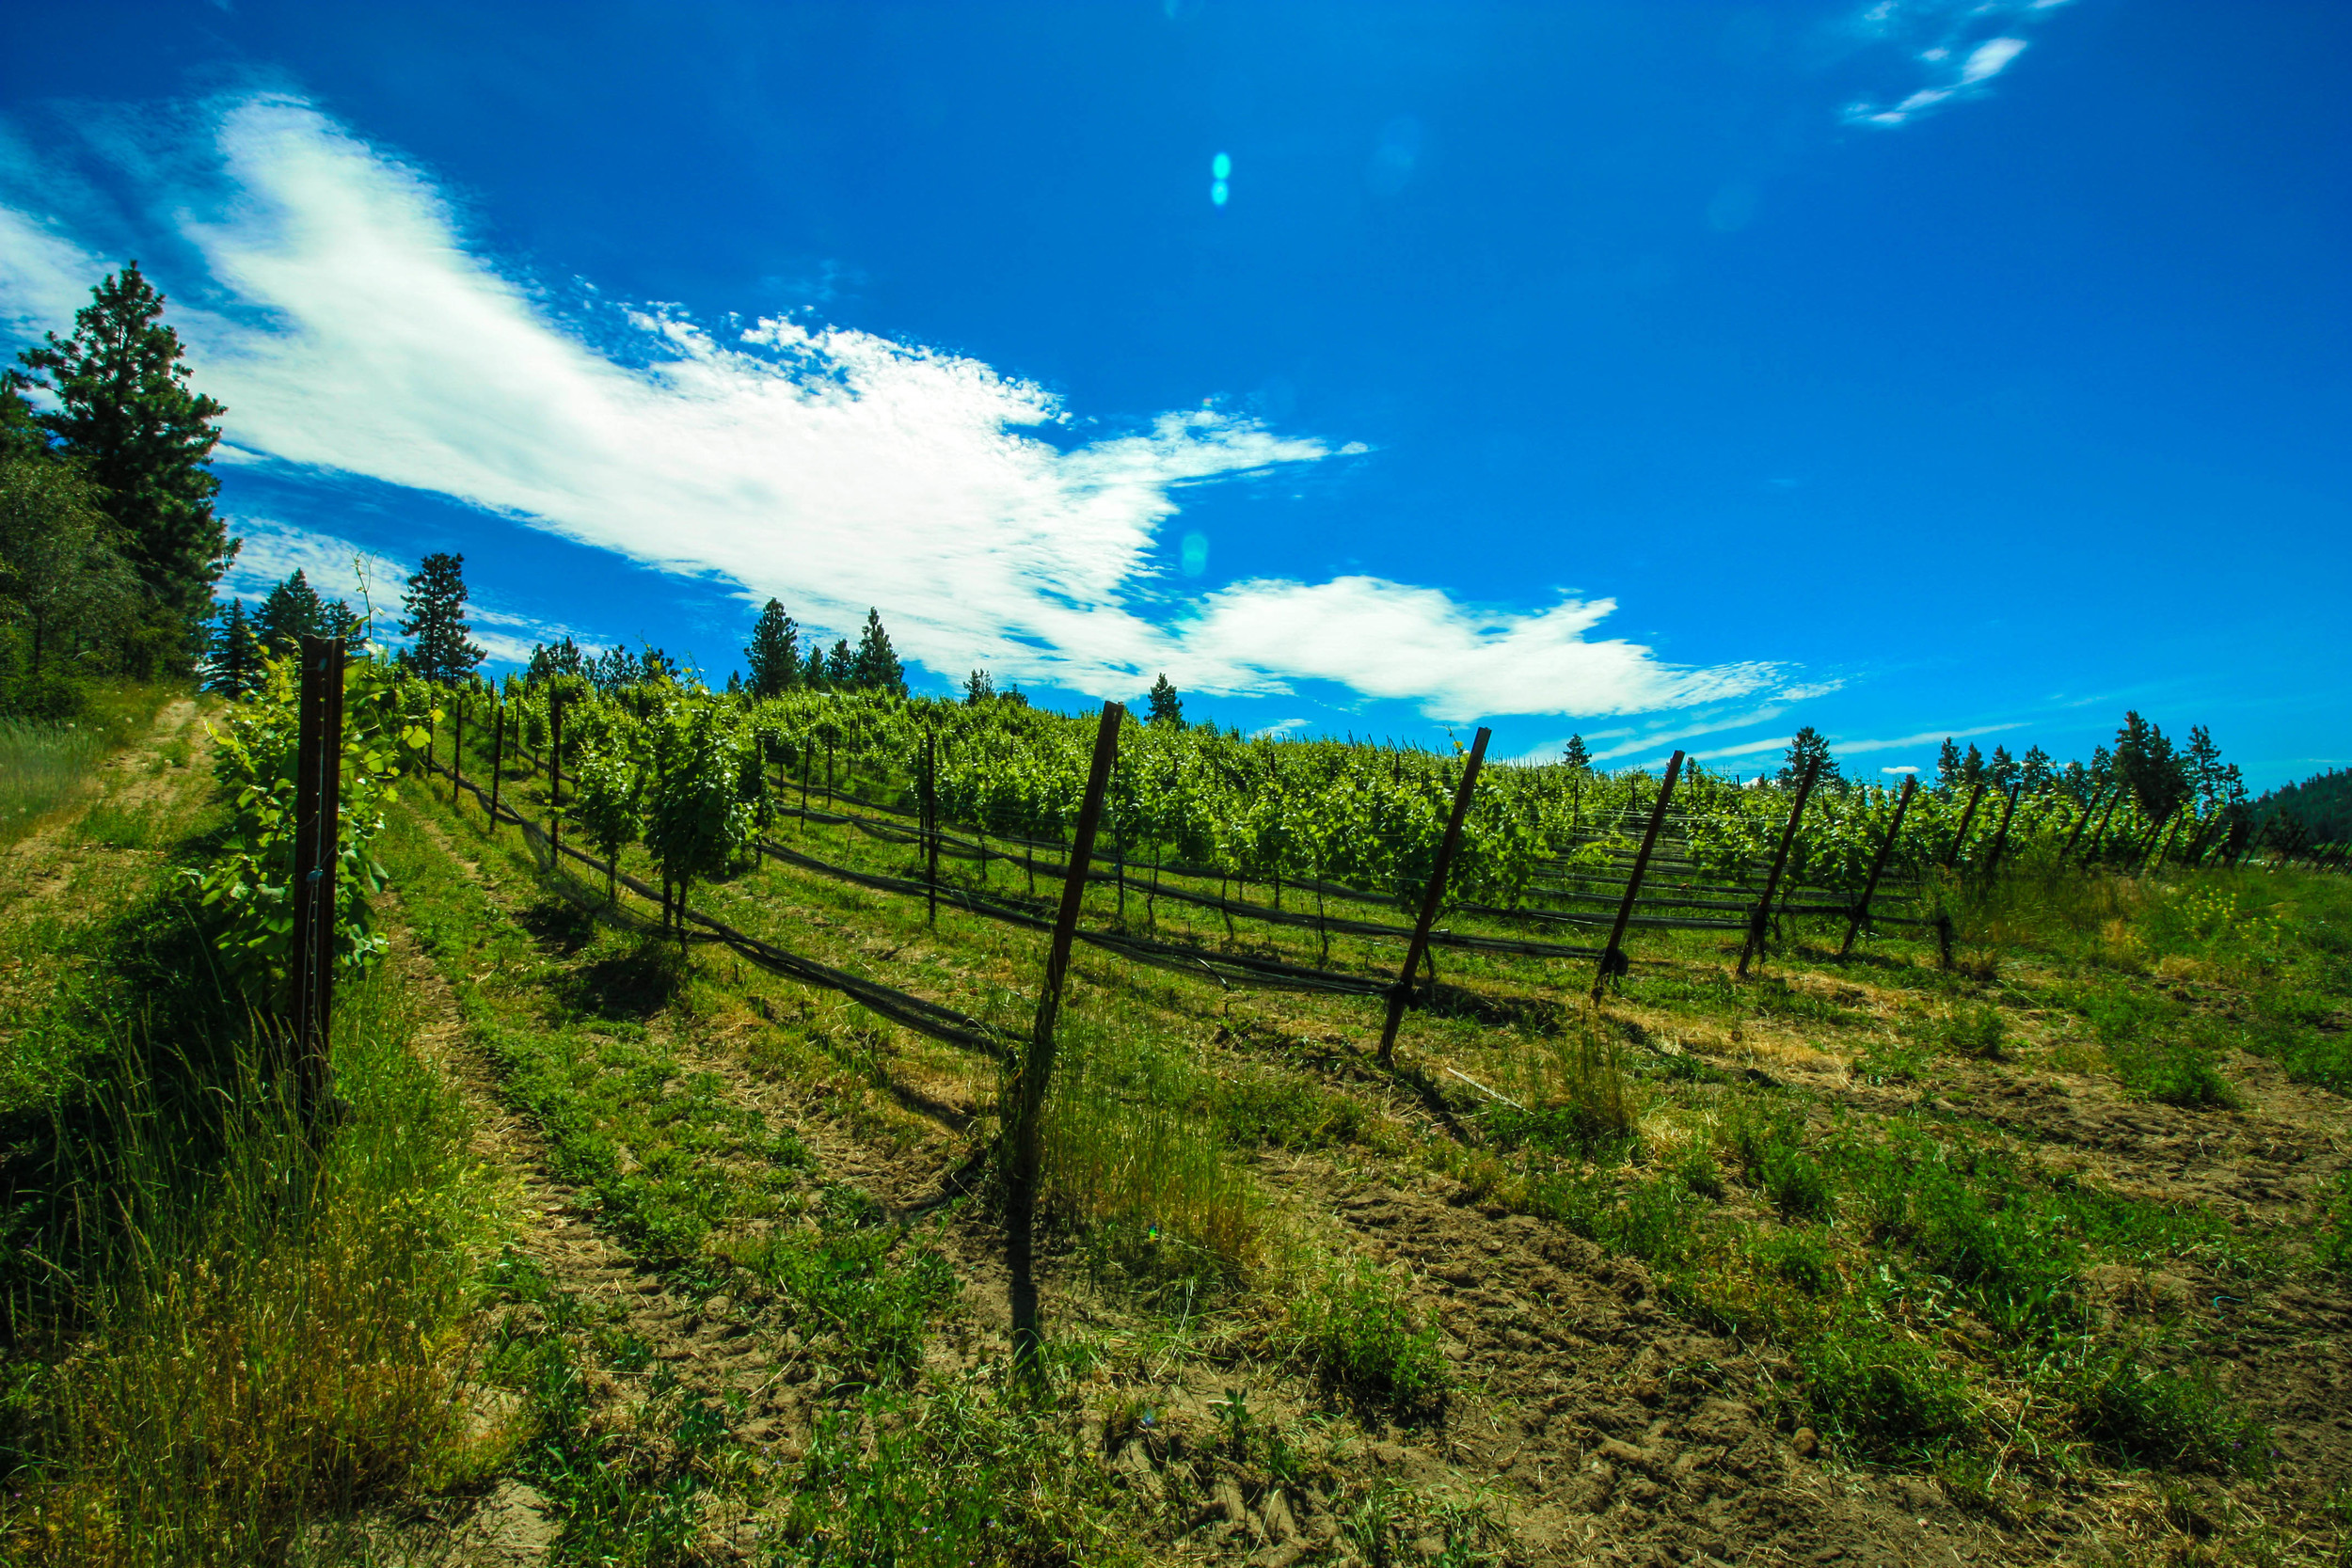 Our vineyard.